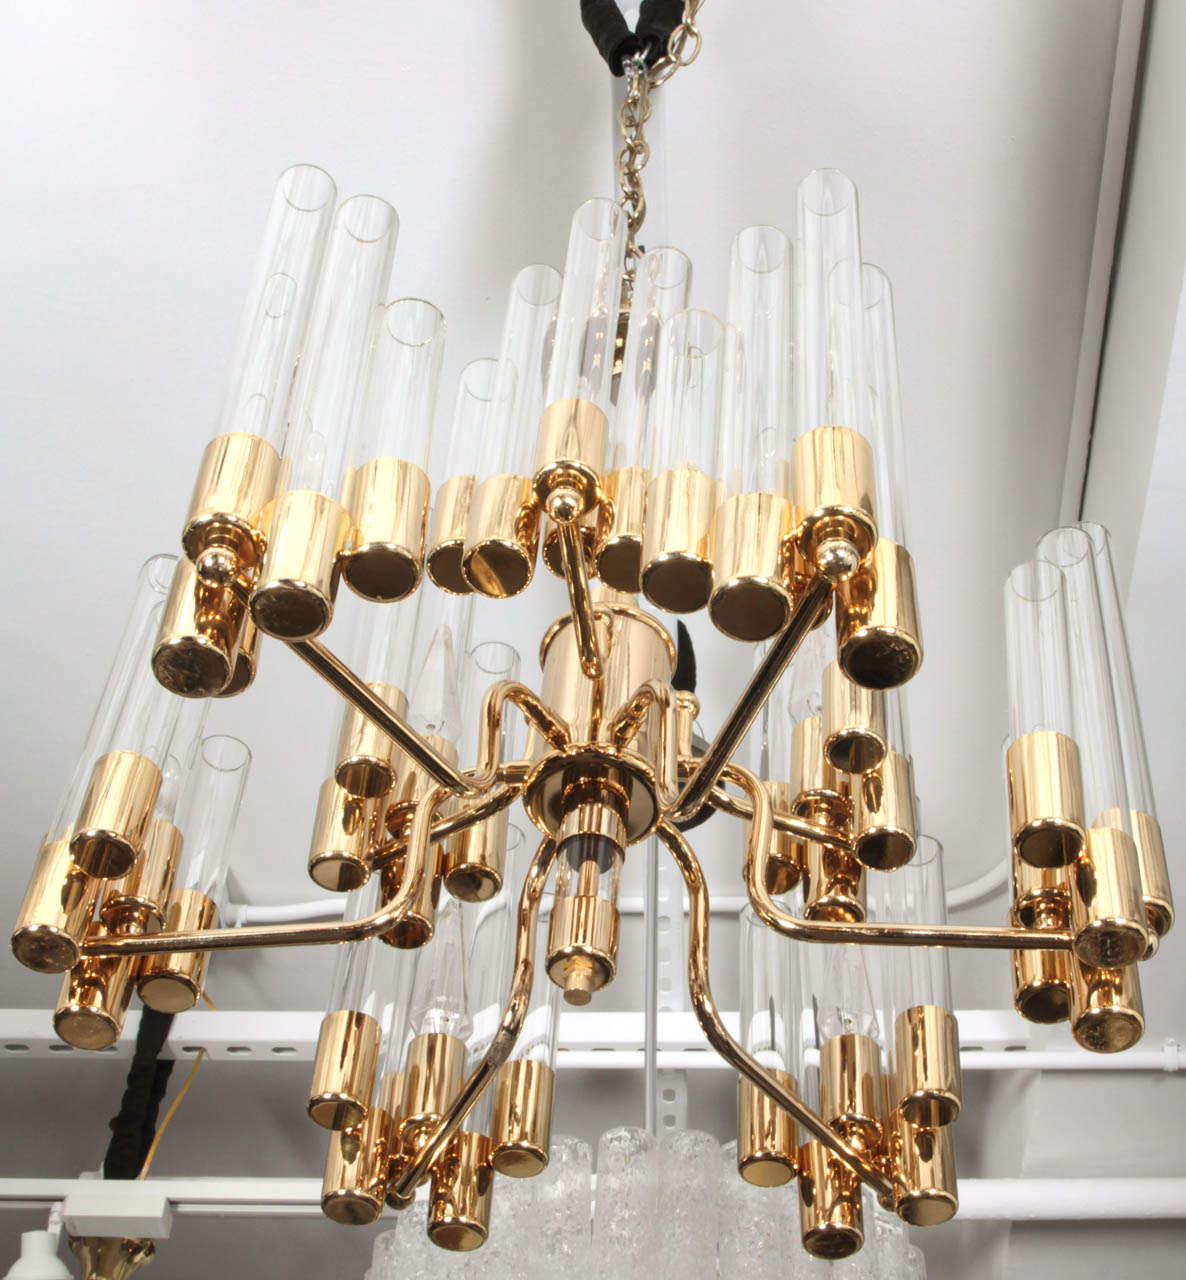 Mid Century 9 Arm Brass & Glass Tube Chandelier by Hans Agne Jakobsson In Excellent Condition For Sale In New York, NY